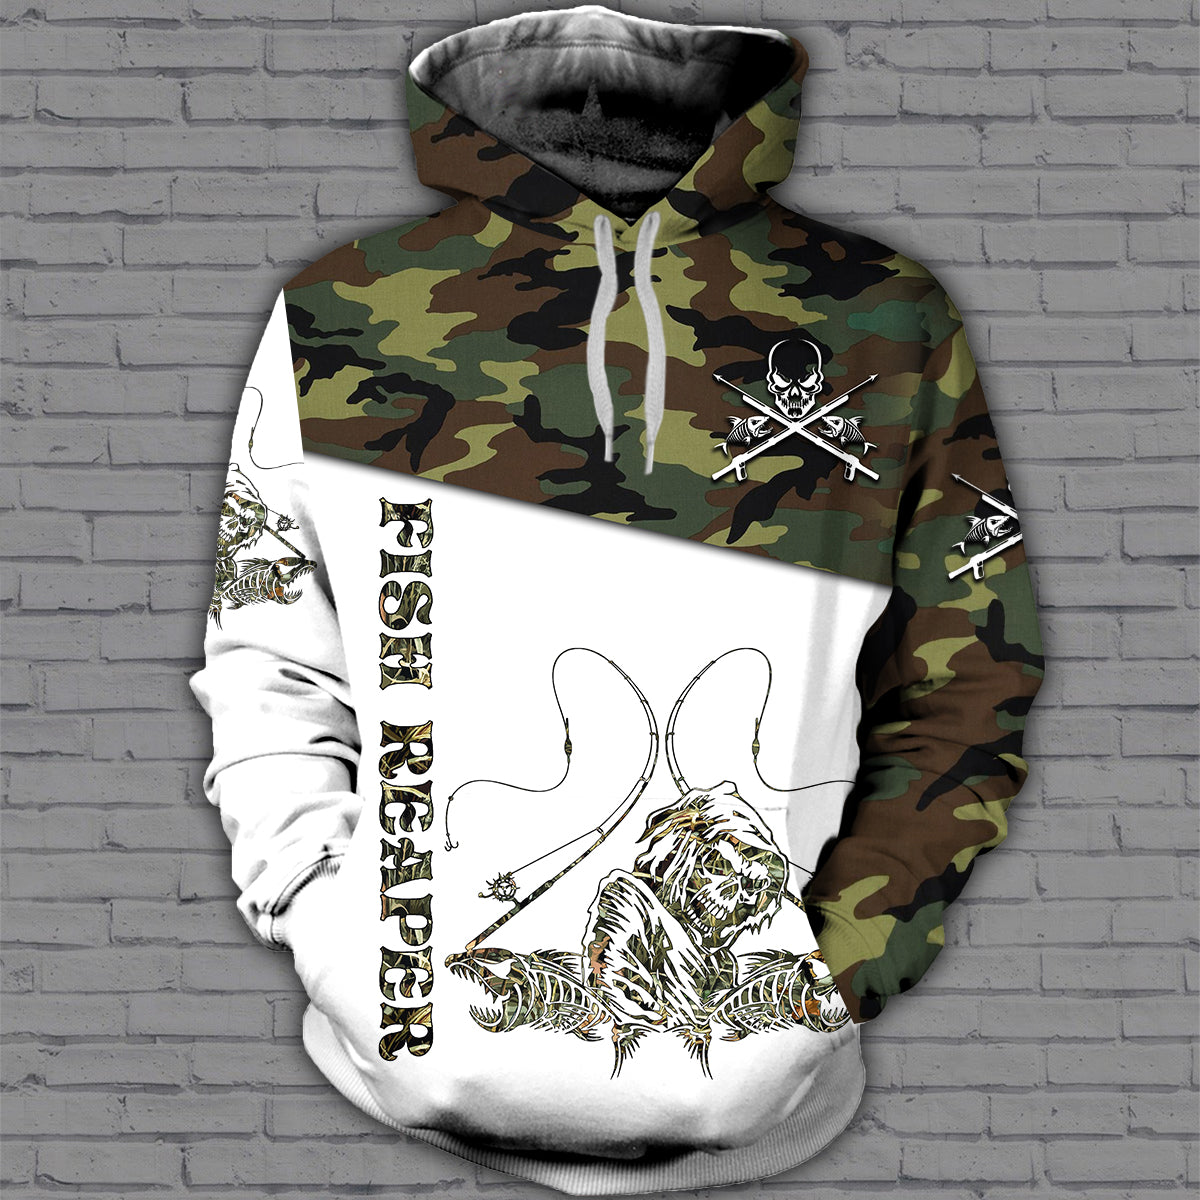 Fishing 3D All Over Printed Hoodie, T-Shirt, Sweater - datr161201